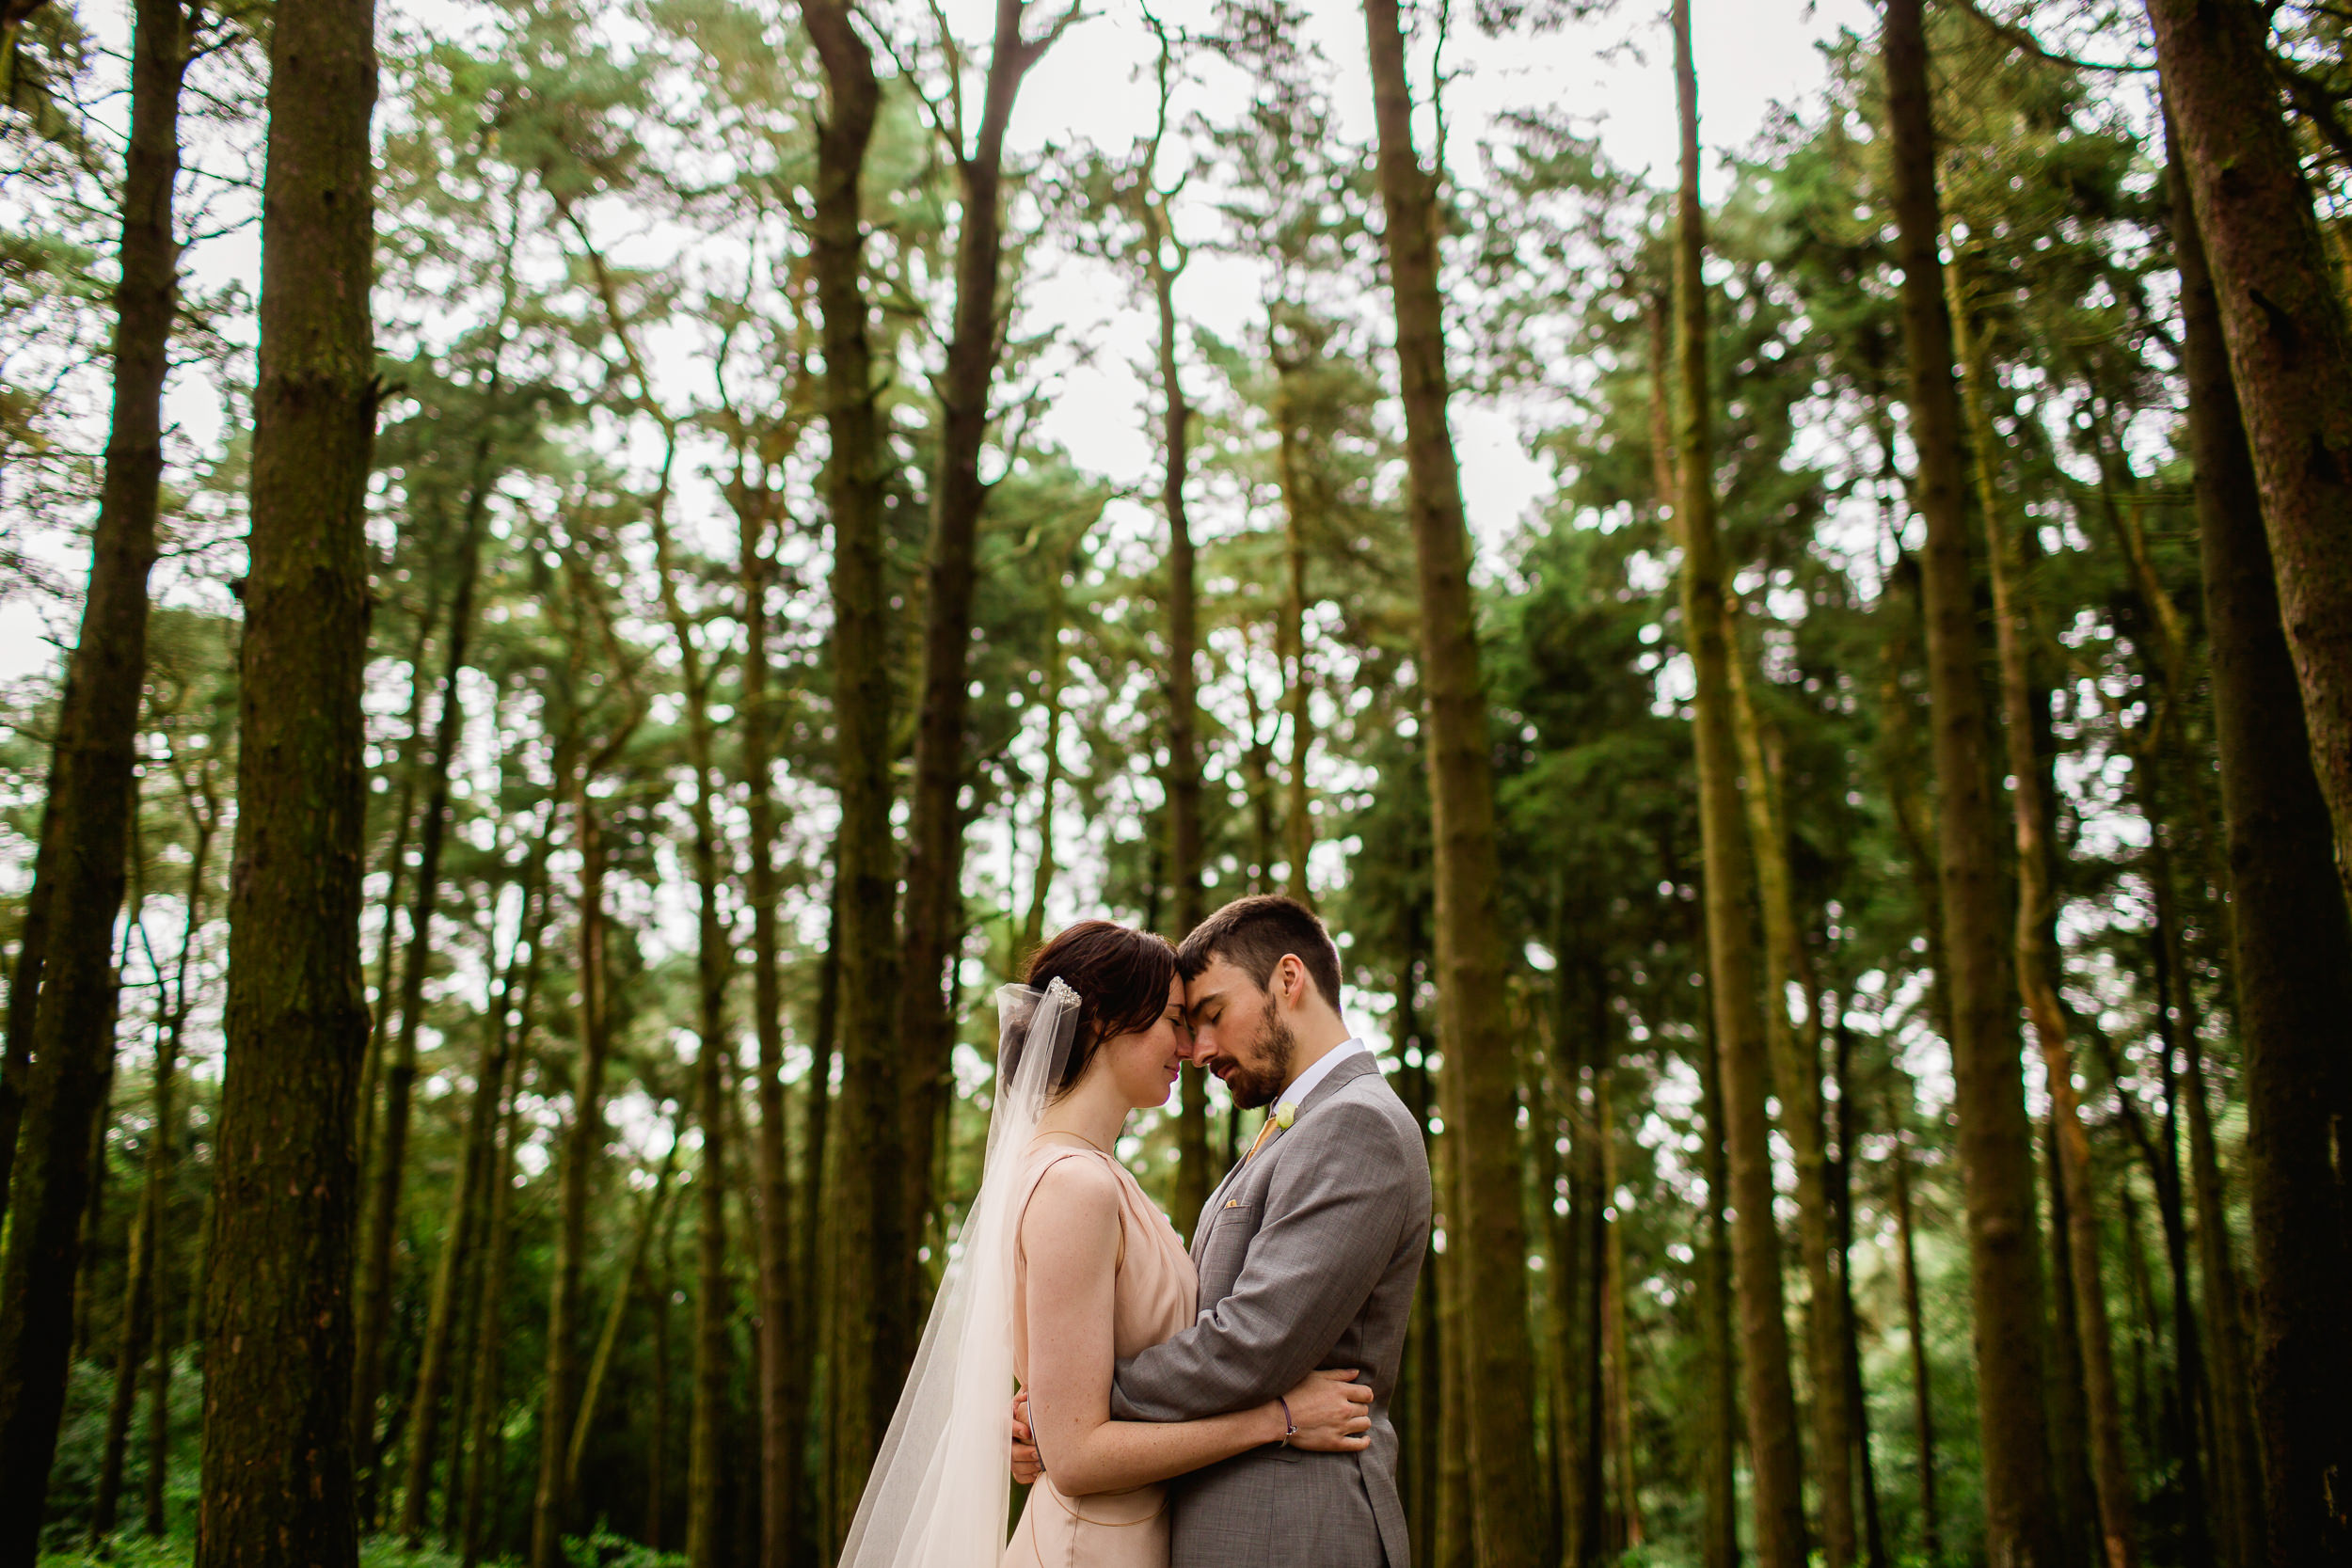 Lickey Hills wedding - woodland wedding - Birmingham wedding